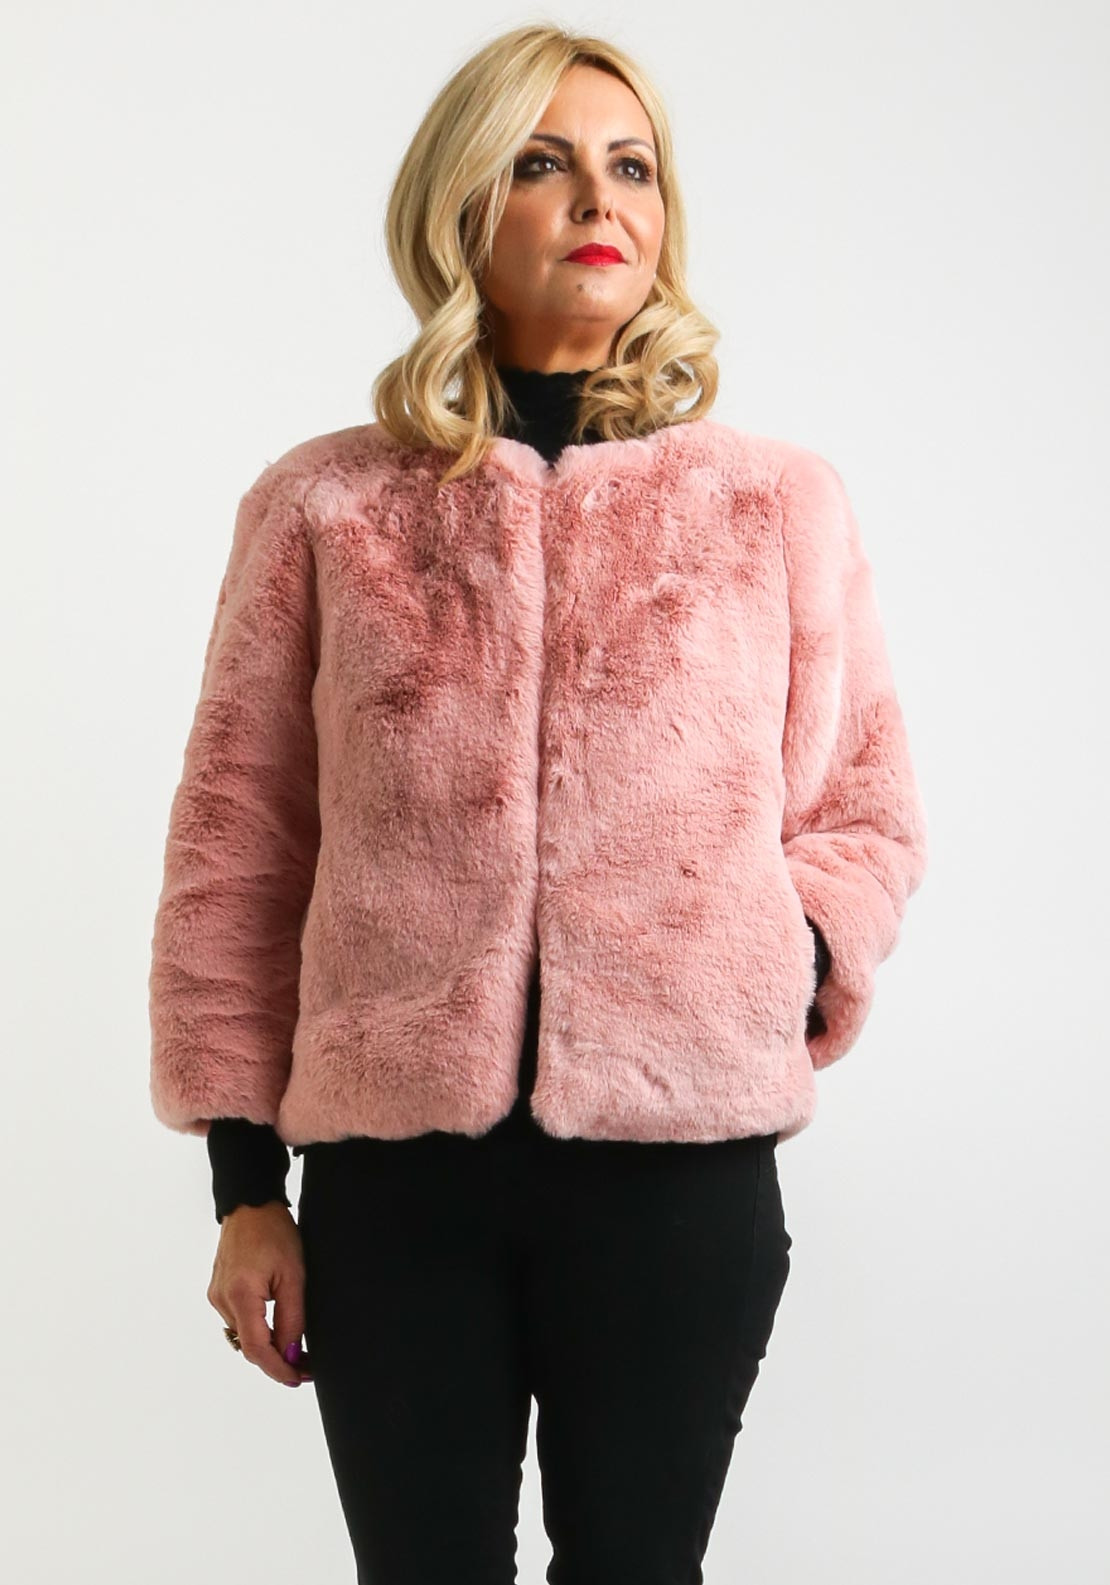 a1b871044 Zenith Collection One Size Faux Fur Jacket